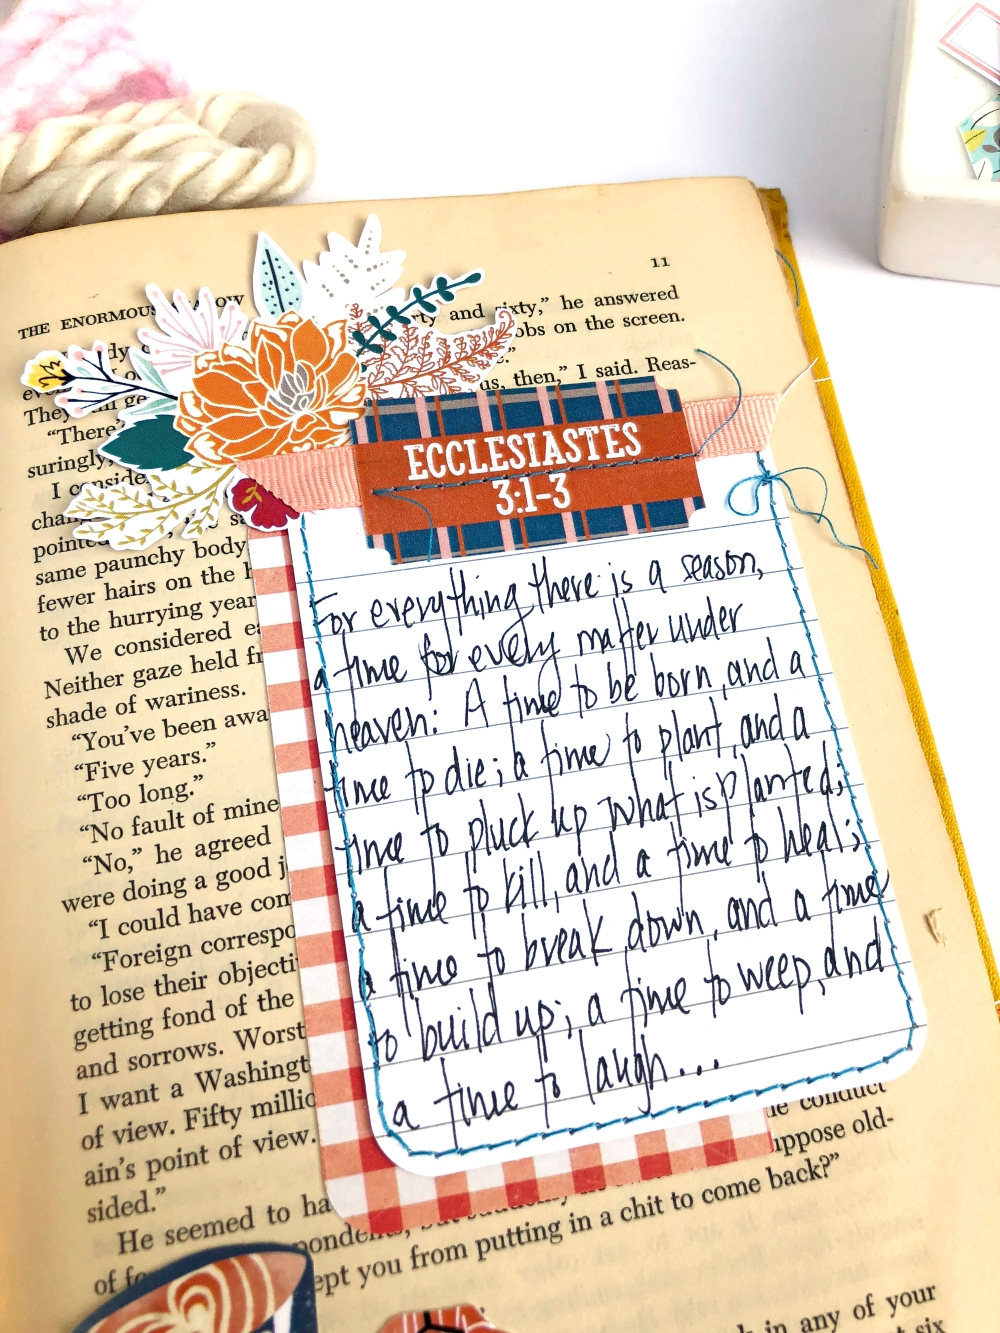 Lydia_TheLittleThings_AlteredBook_7.1